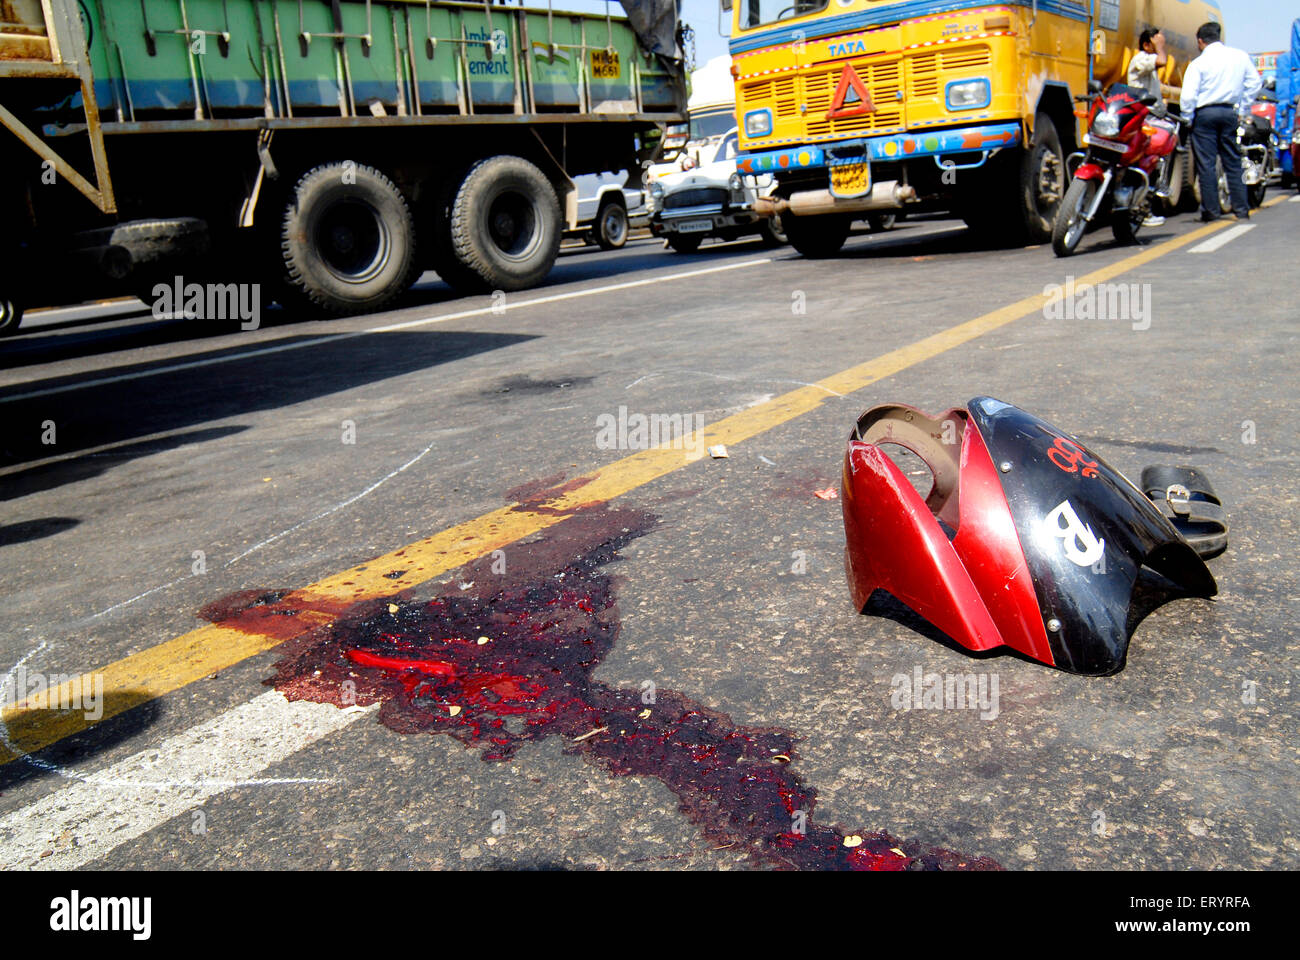 Blood and broken part of two wheeler accident on express highway in Bombay Mumbai ; Maharashtra ; India - Stock Image